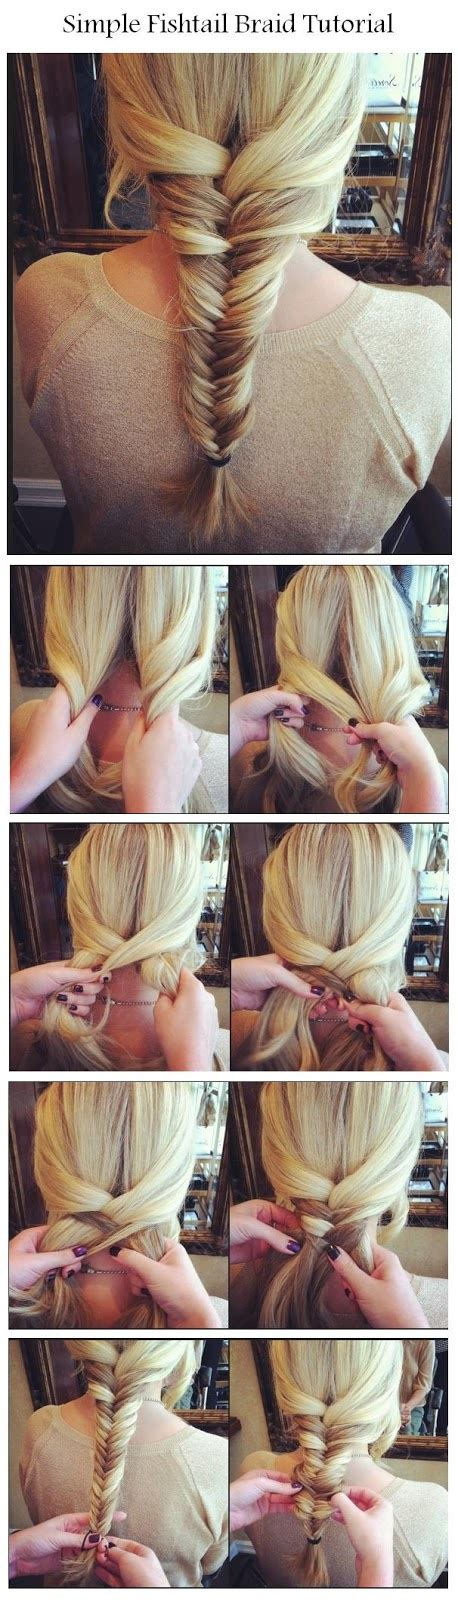 steps to show how to make fish tail favload new short hair styles make a simple fishtail braid